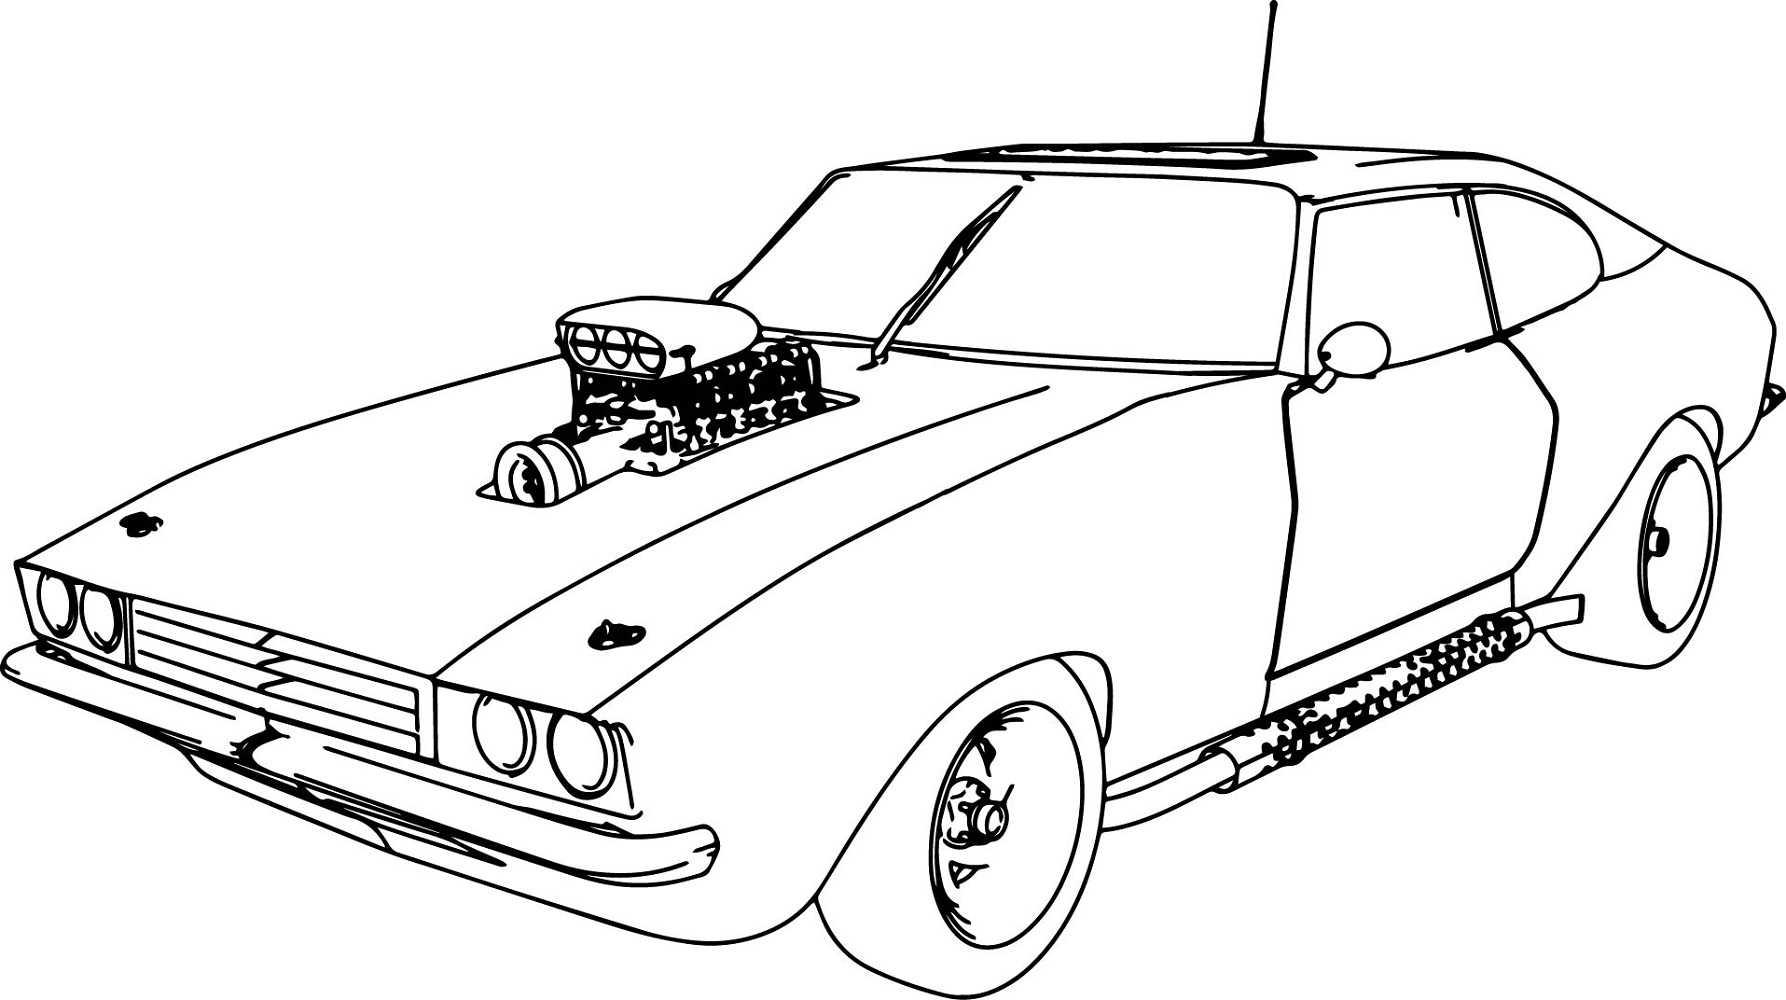 fast and furious coloring pages free | Fast and Furious Coloring Pages | Educative Printable